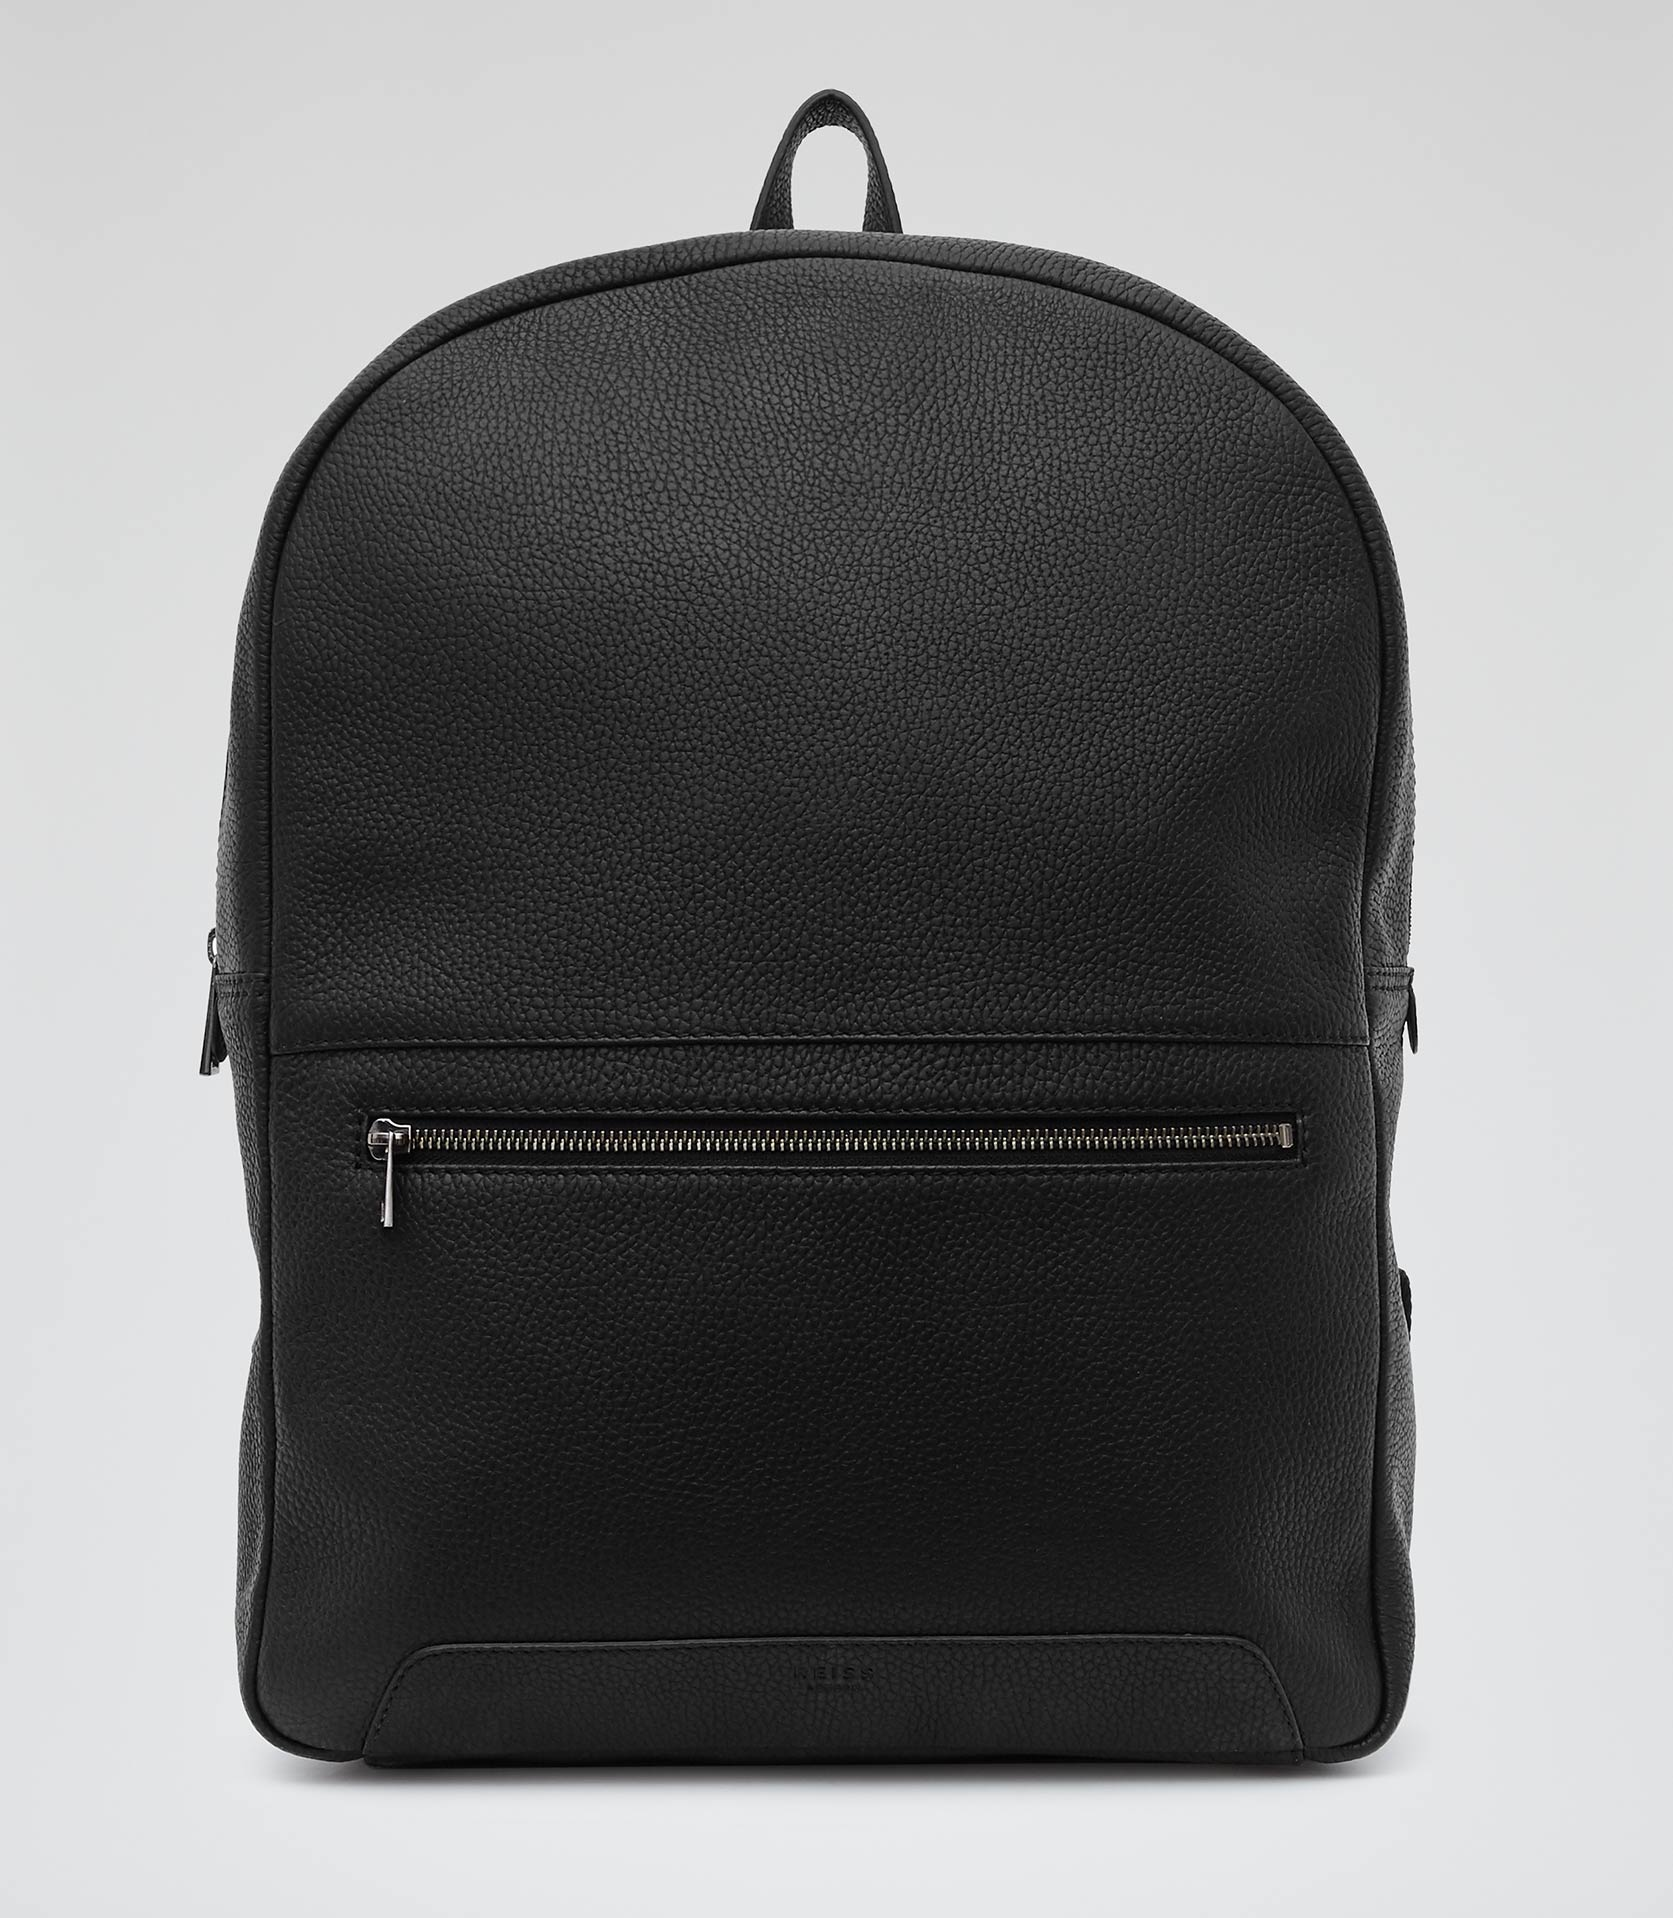 Black Leather Backpack Mens HAQOel1X